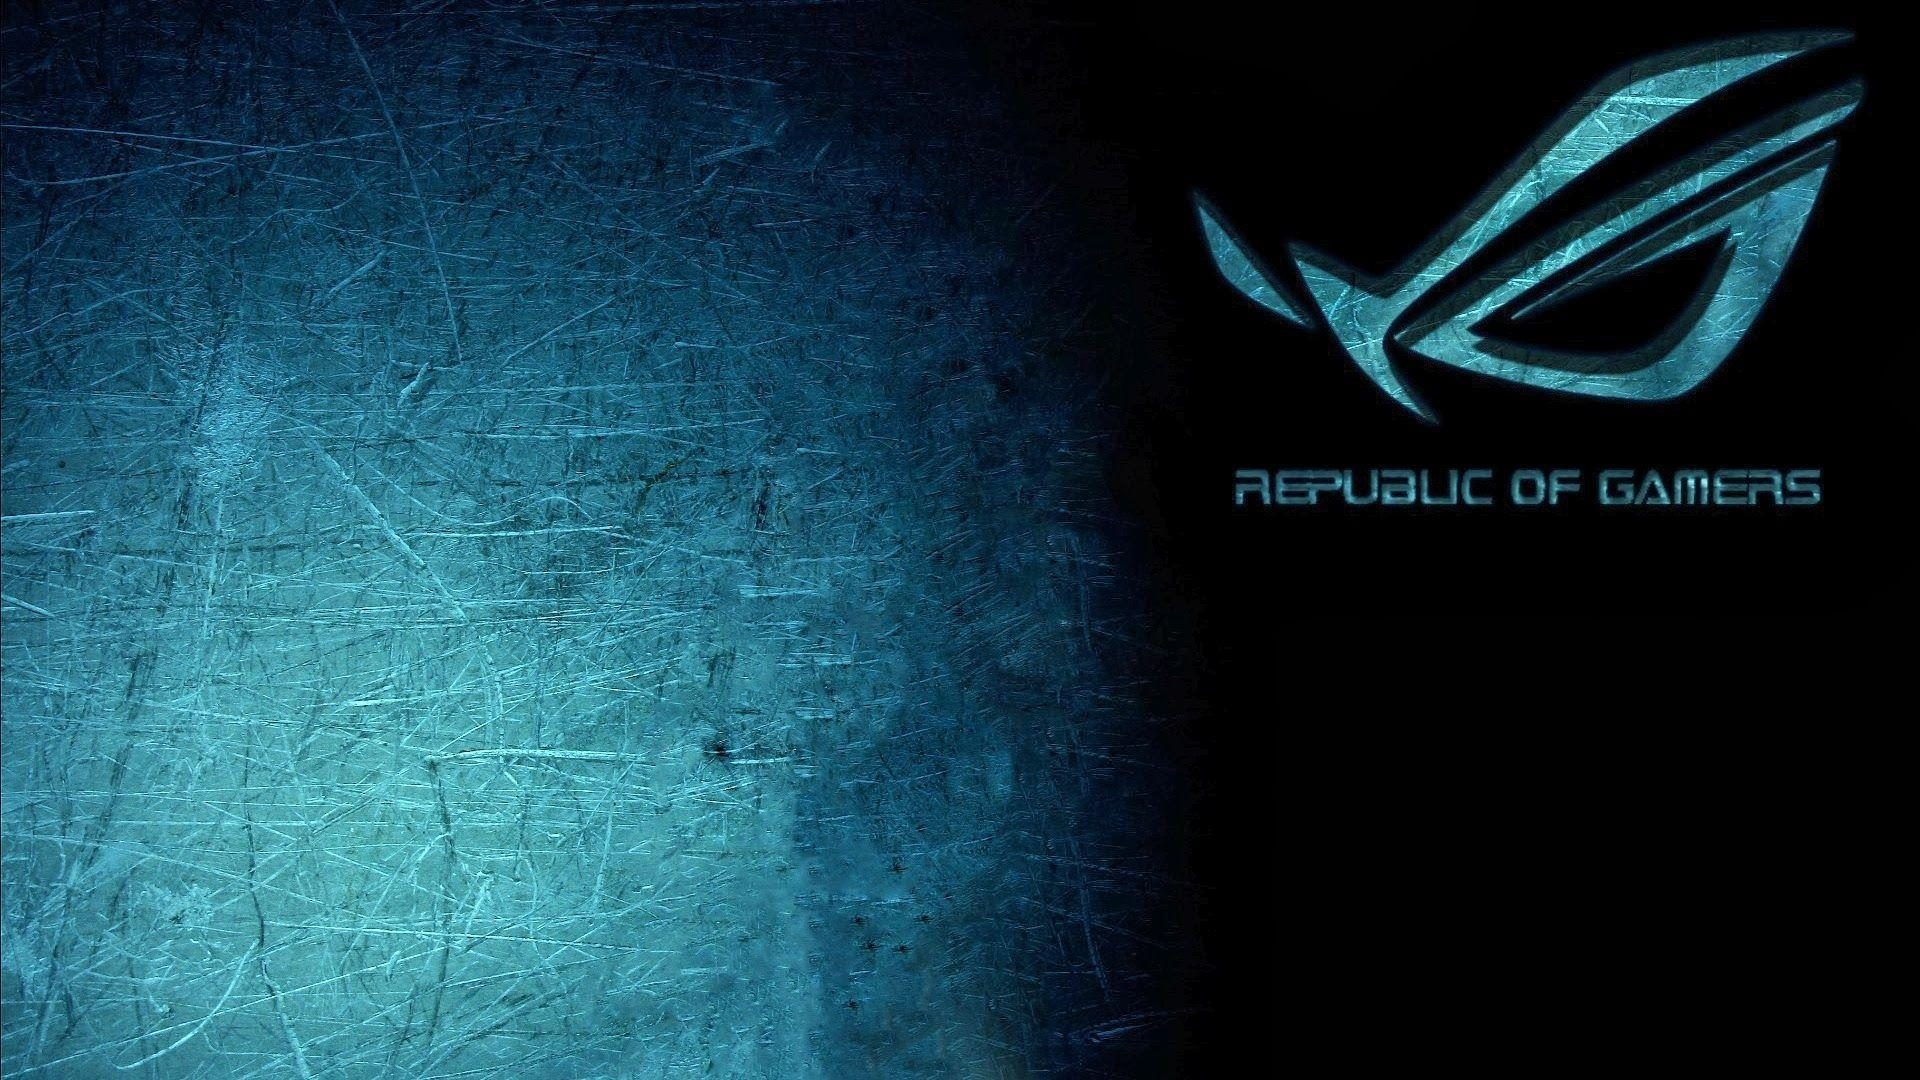 asus blue rog wallpaper - photo #15